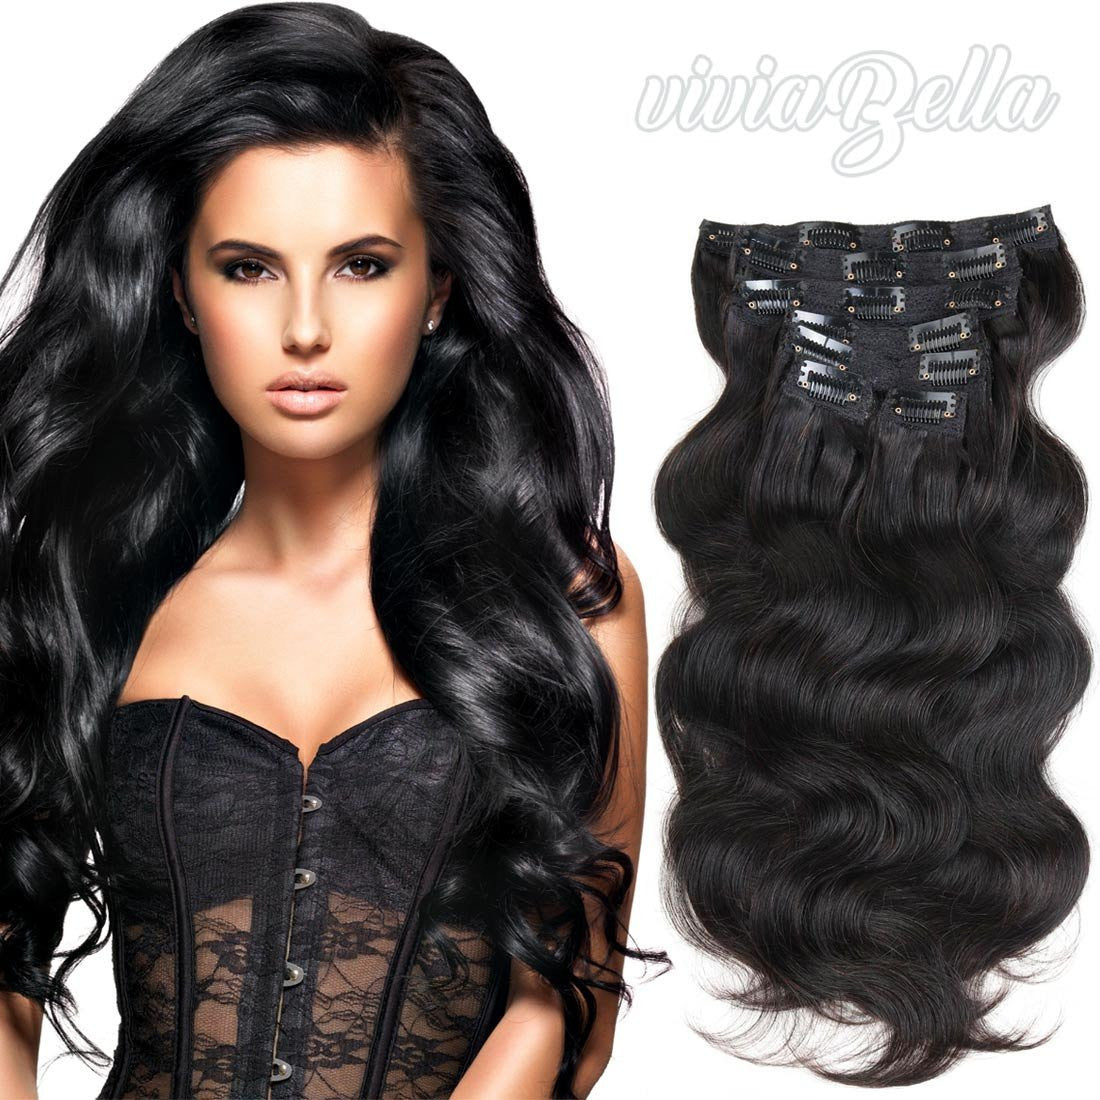 Full Head Clip In Hair Extensions Body Wave Human Hair Brazilian